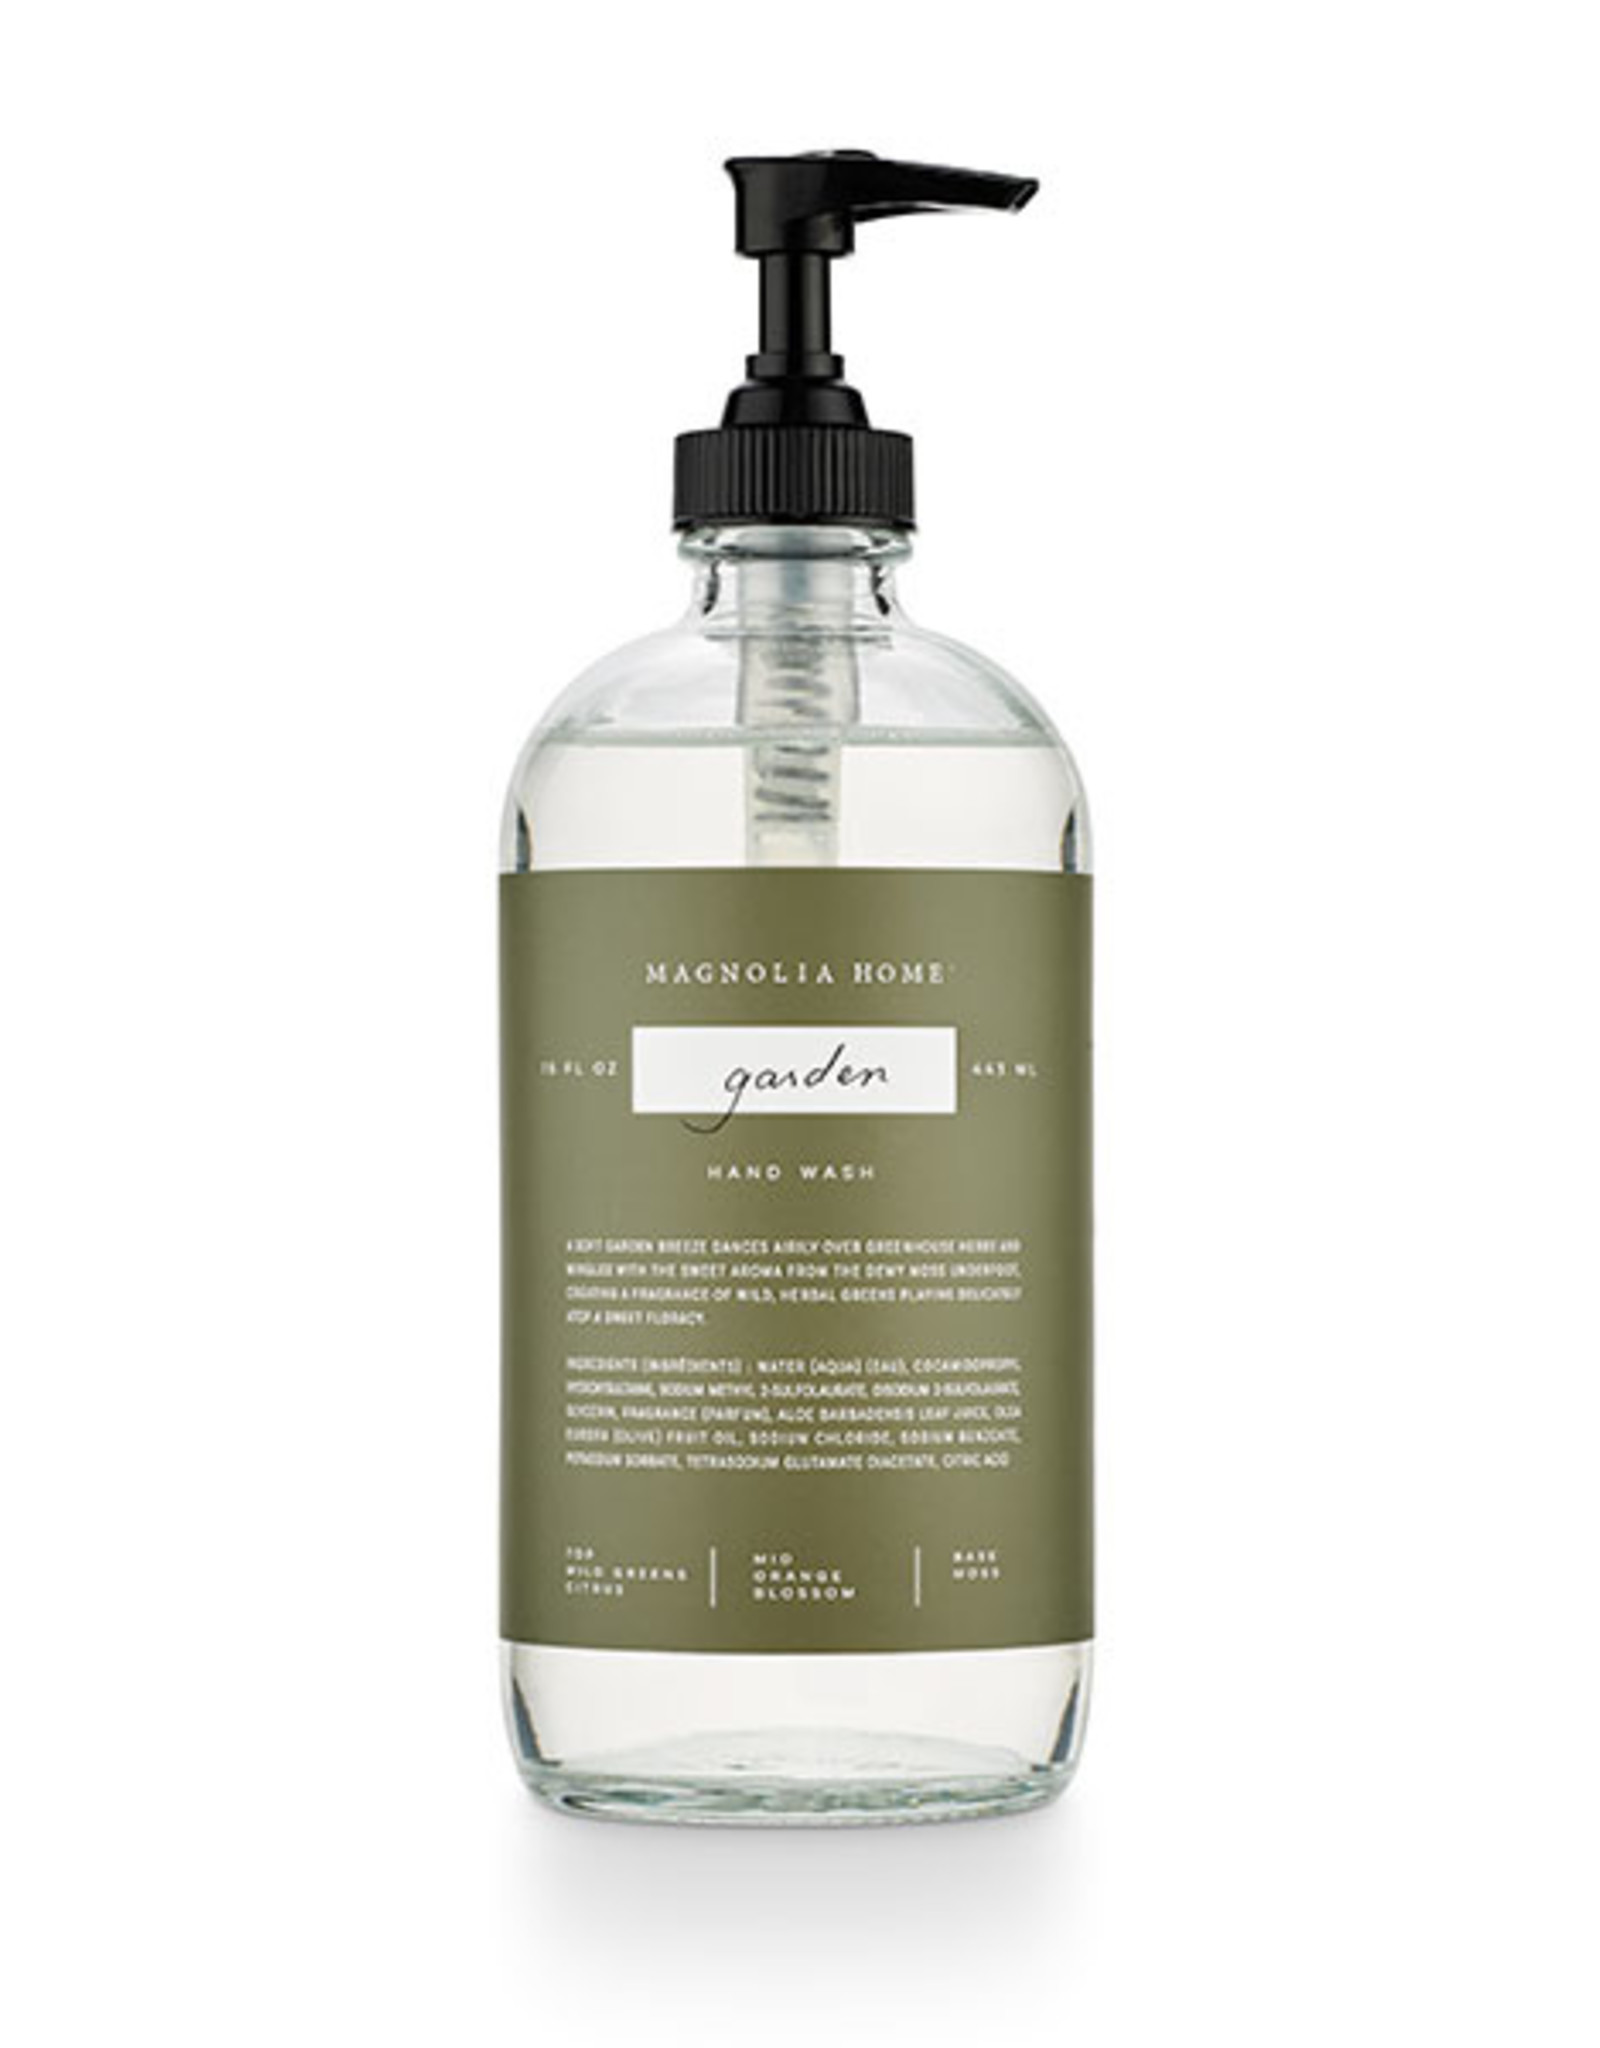 Magnolia Home - Garden Candle Hand Wash